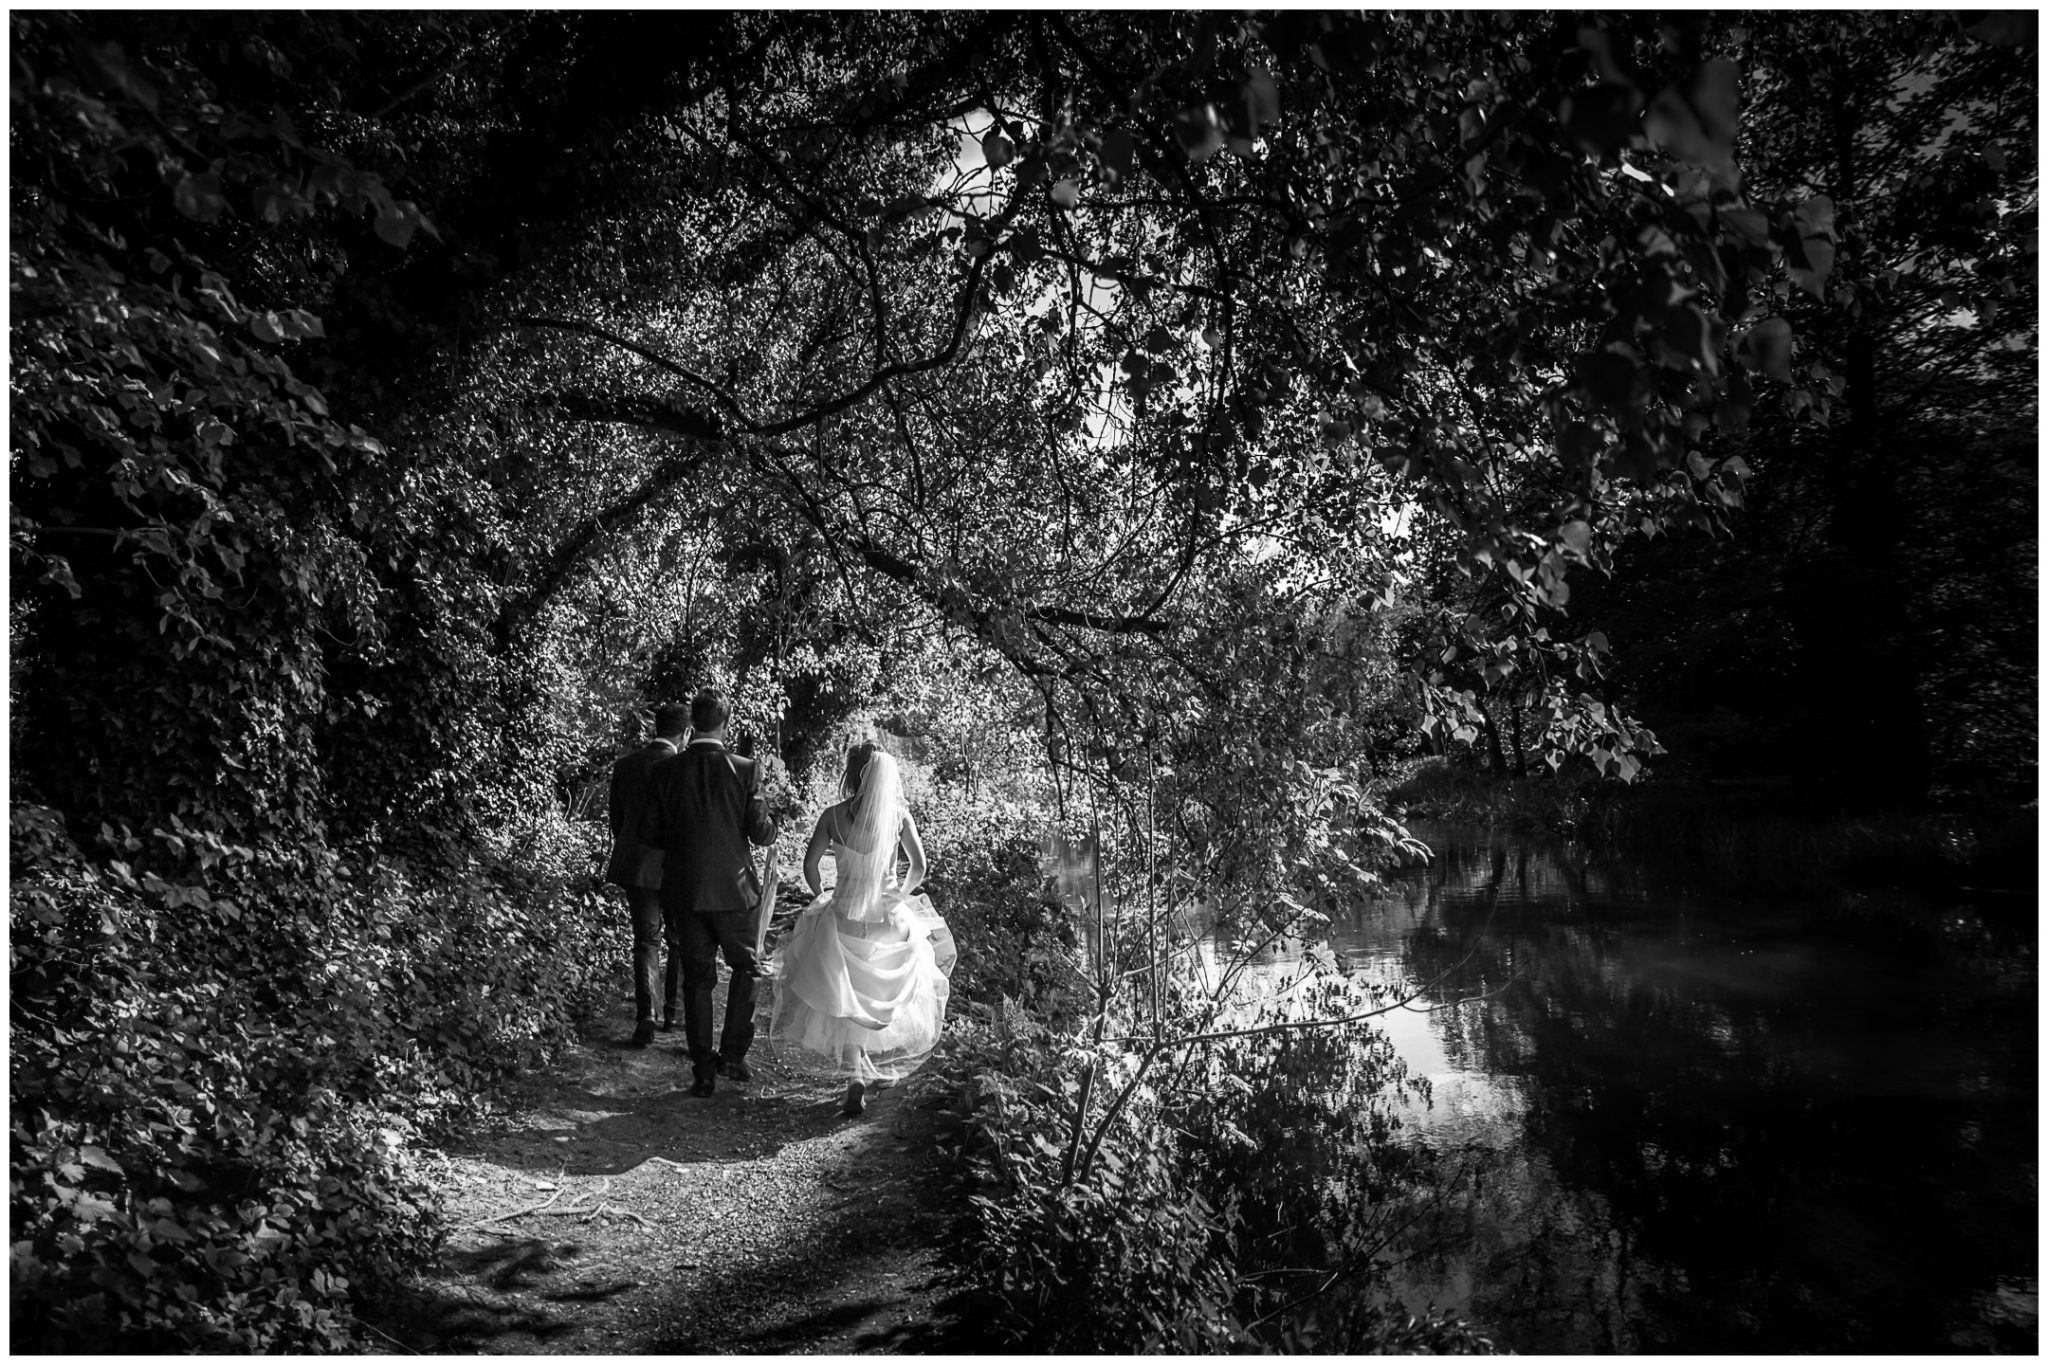 Black and white photo of wedding couple walking beside river